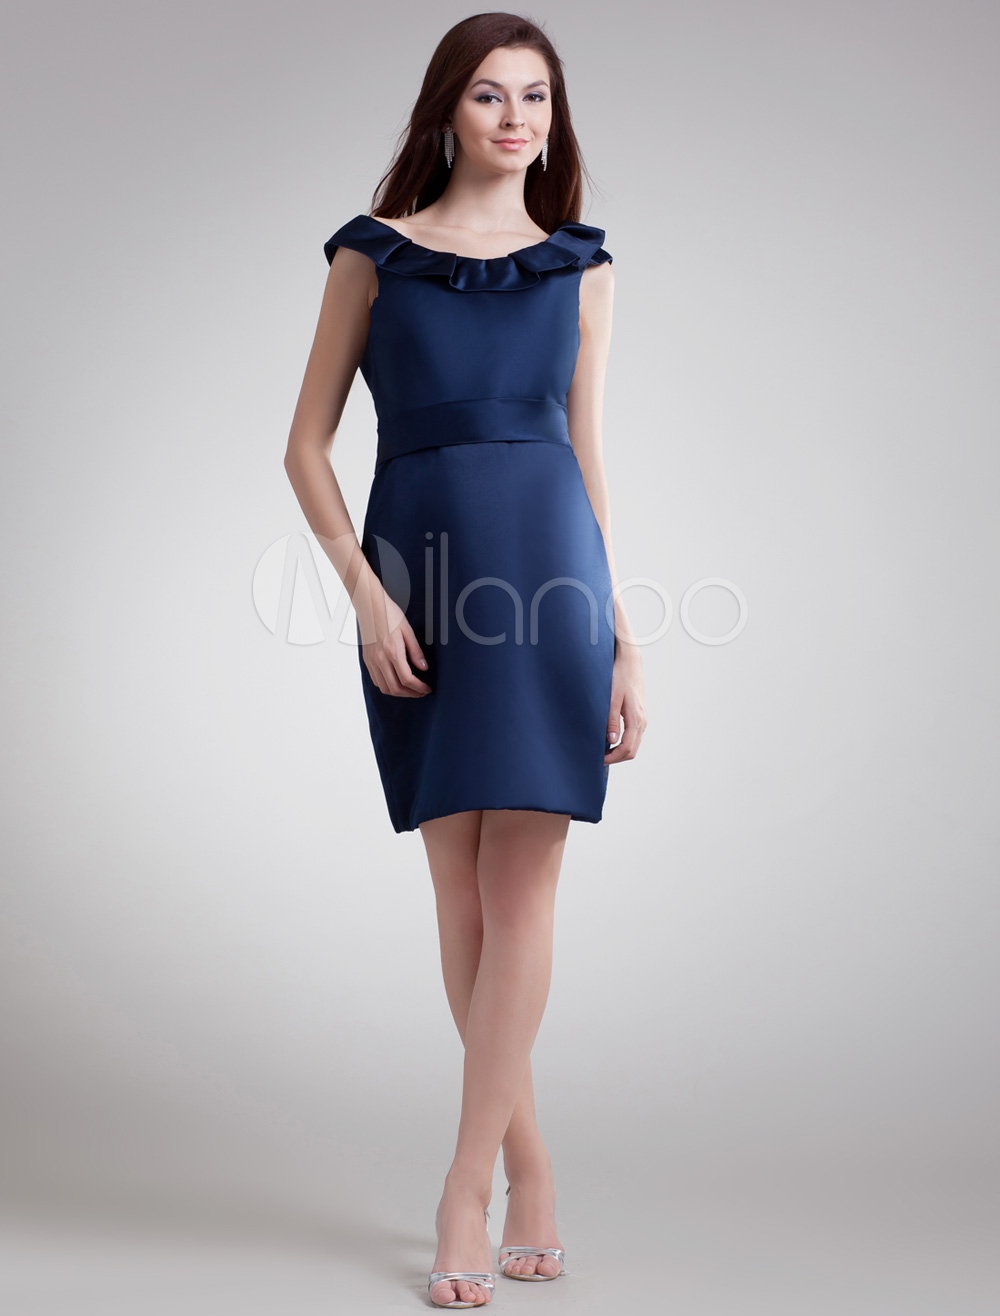 Navy satin cocktail dress